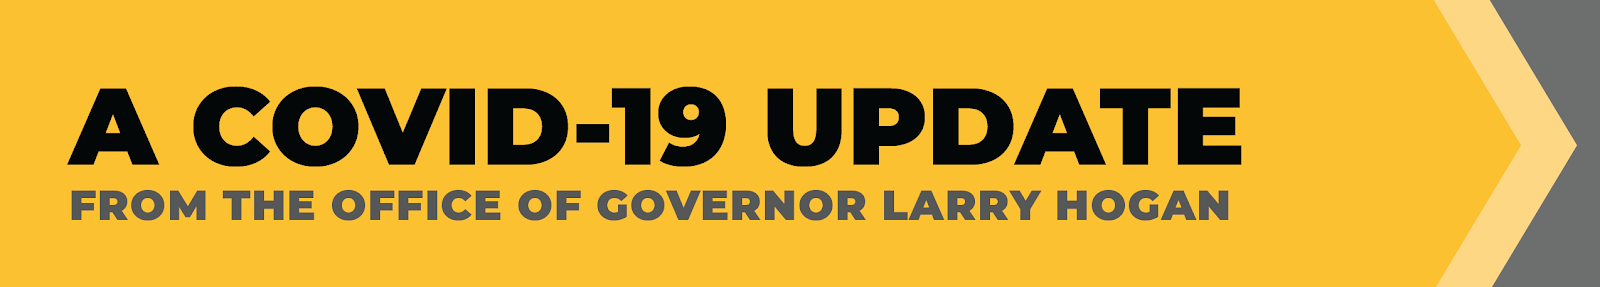 A COVID-19 Update from Governor Larry Hogan